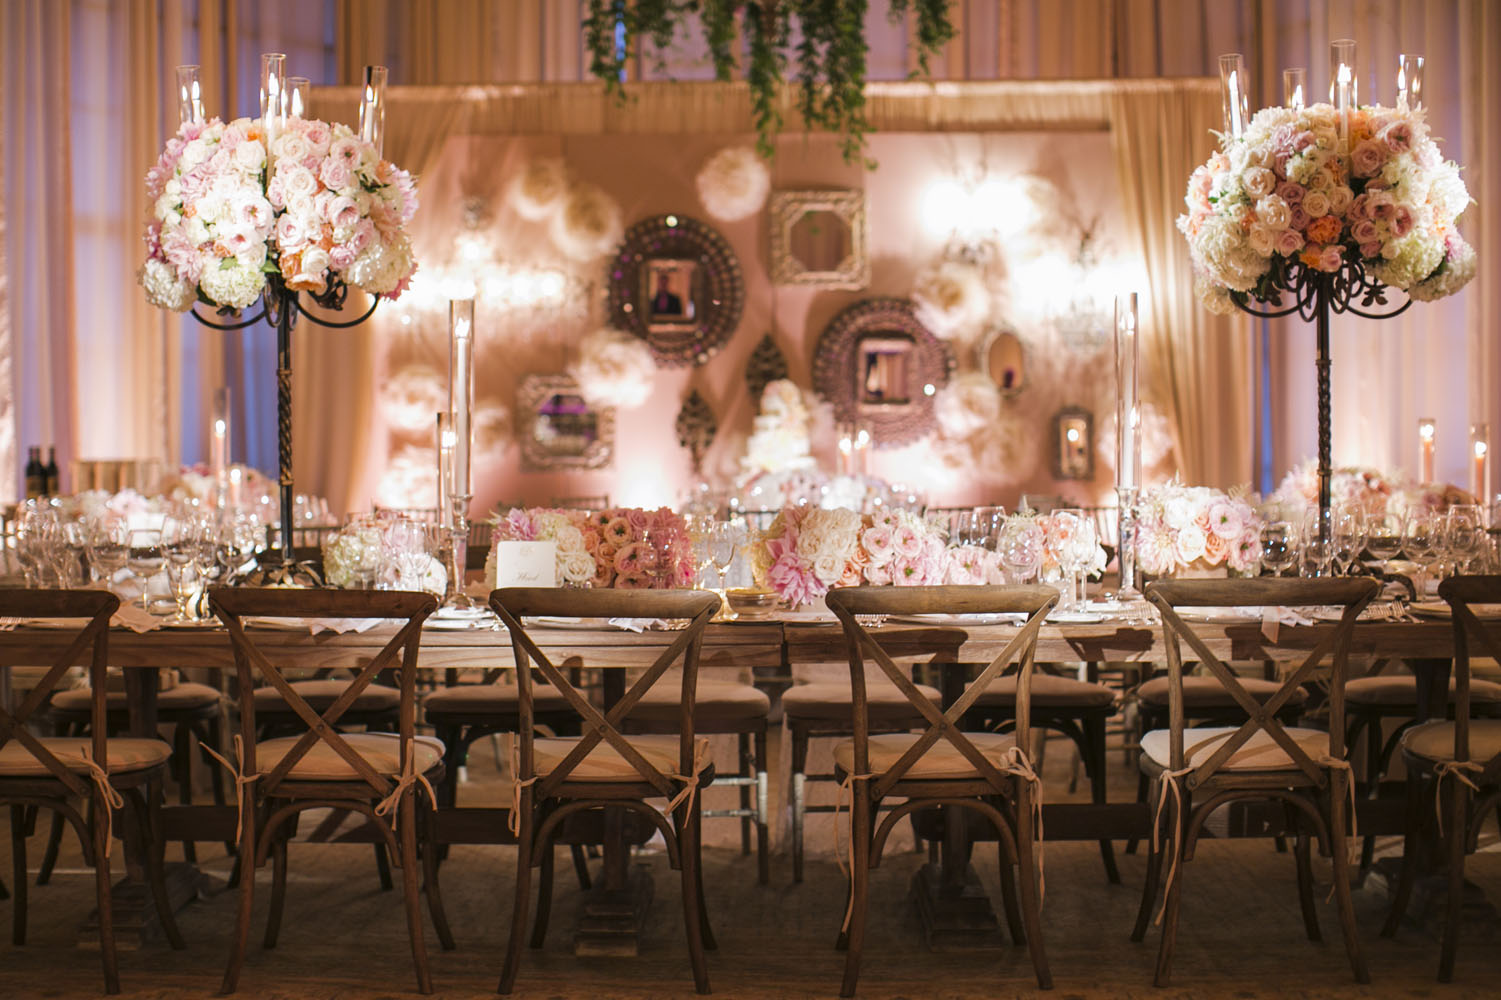 Beautiful Reception Decorations Vintage Wedding Themes Show Elegant Impression Around It